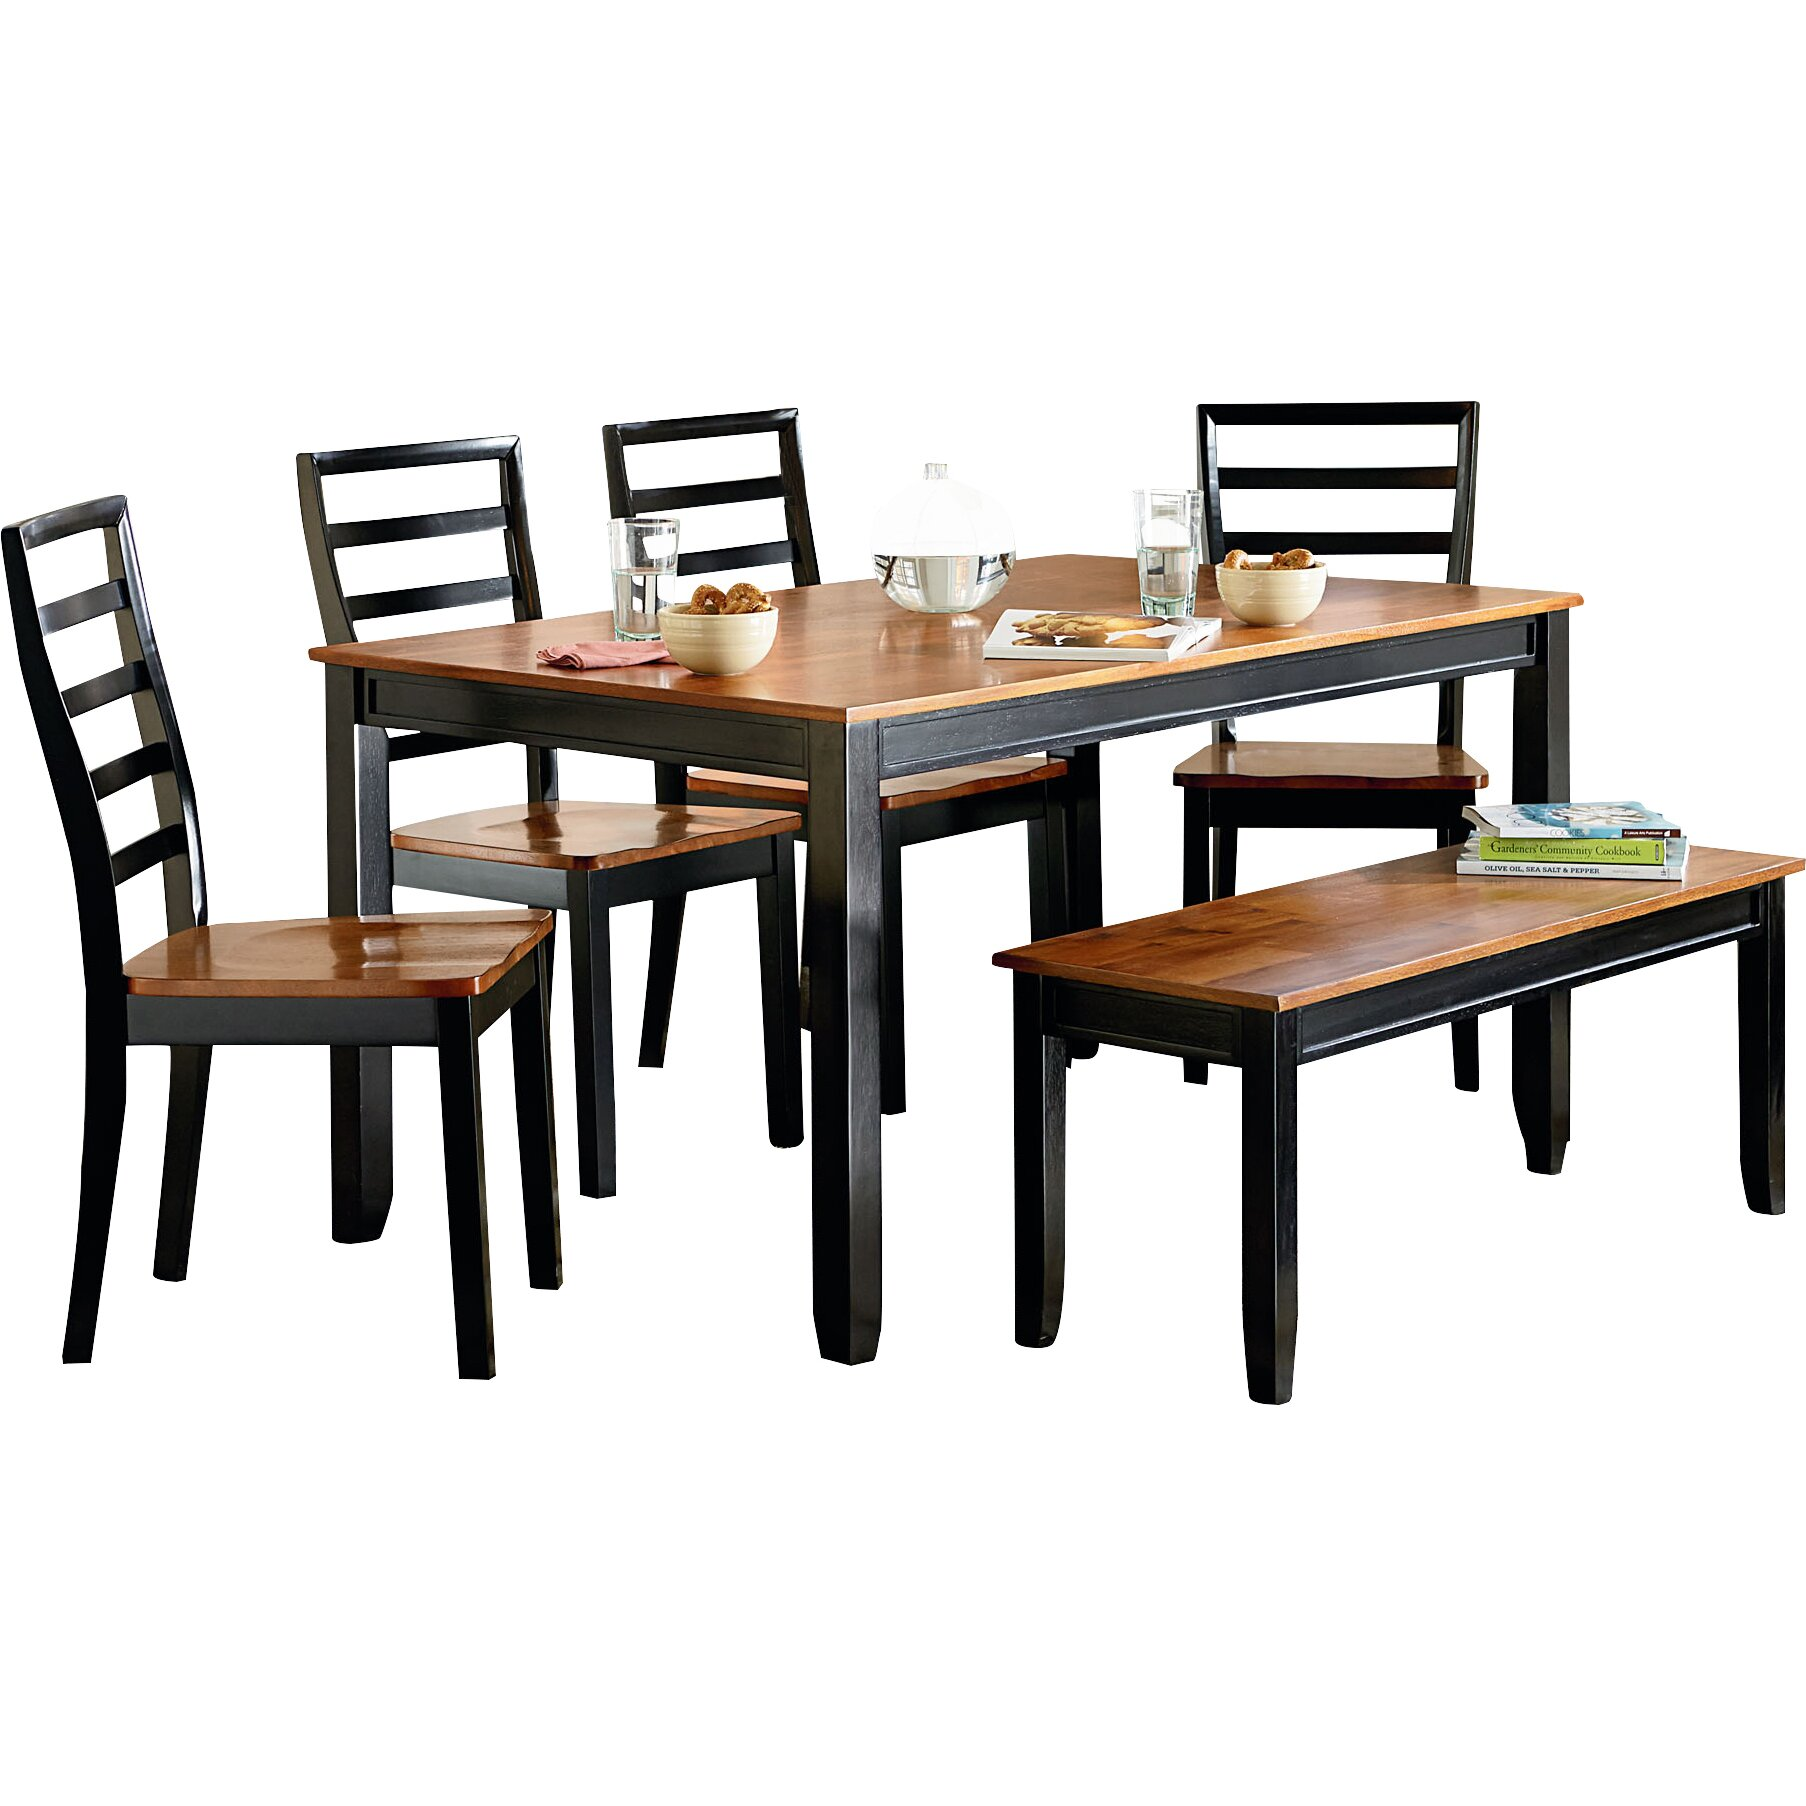 Standard furniture lexford 5 piece dining set reviews for Dining room furniture set